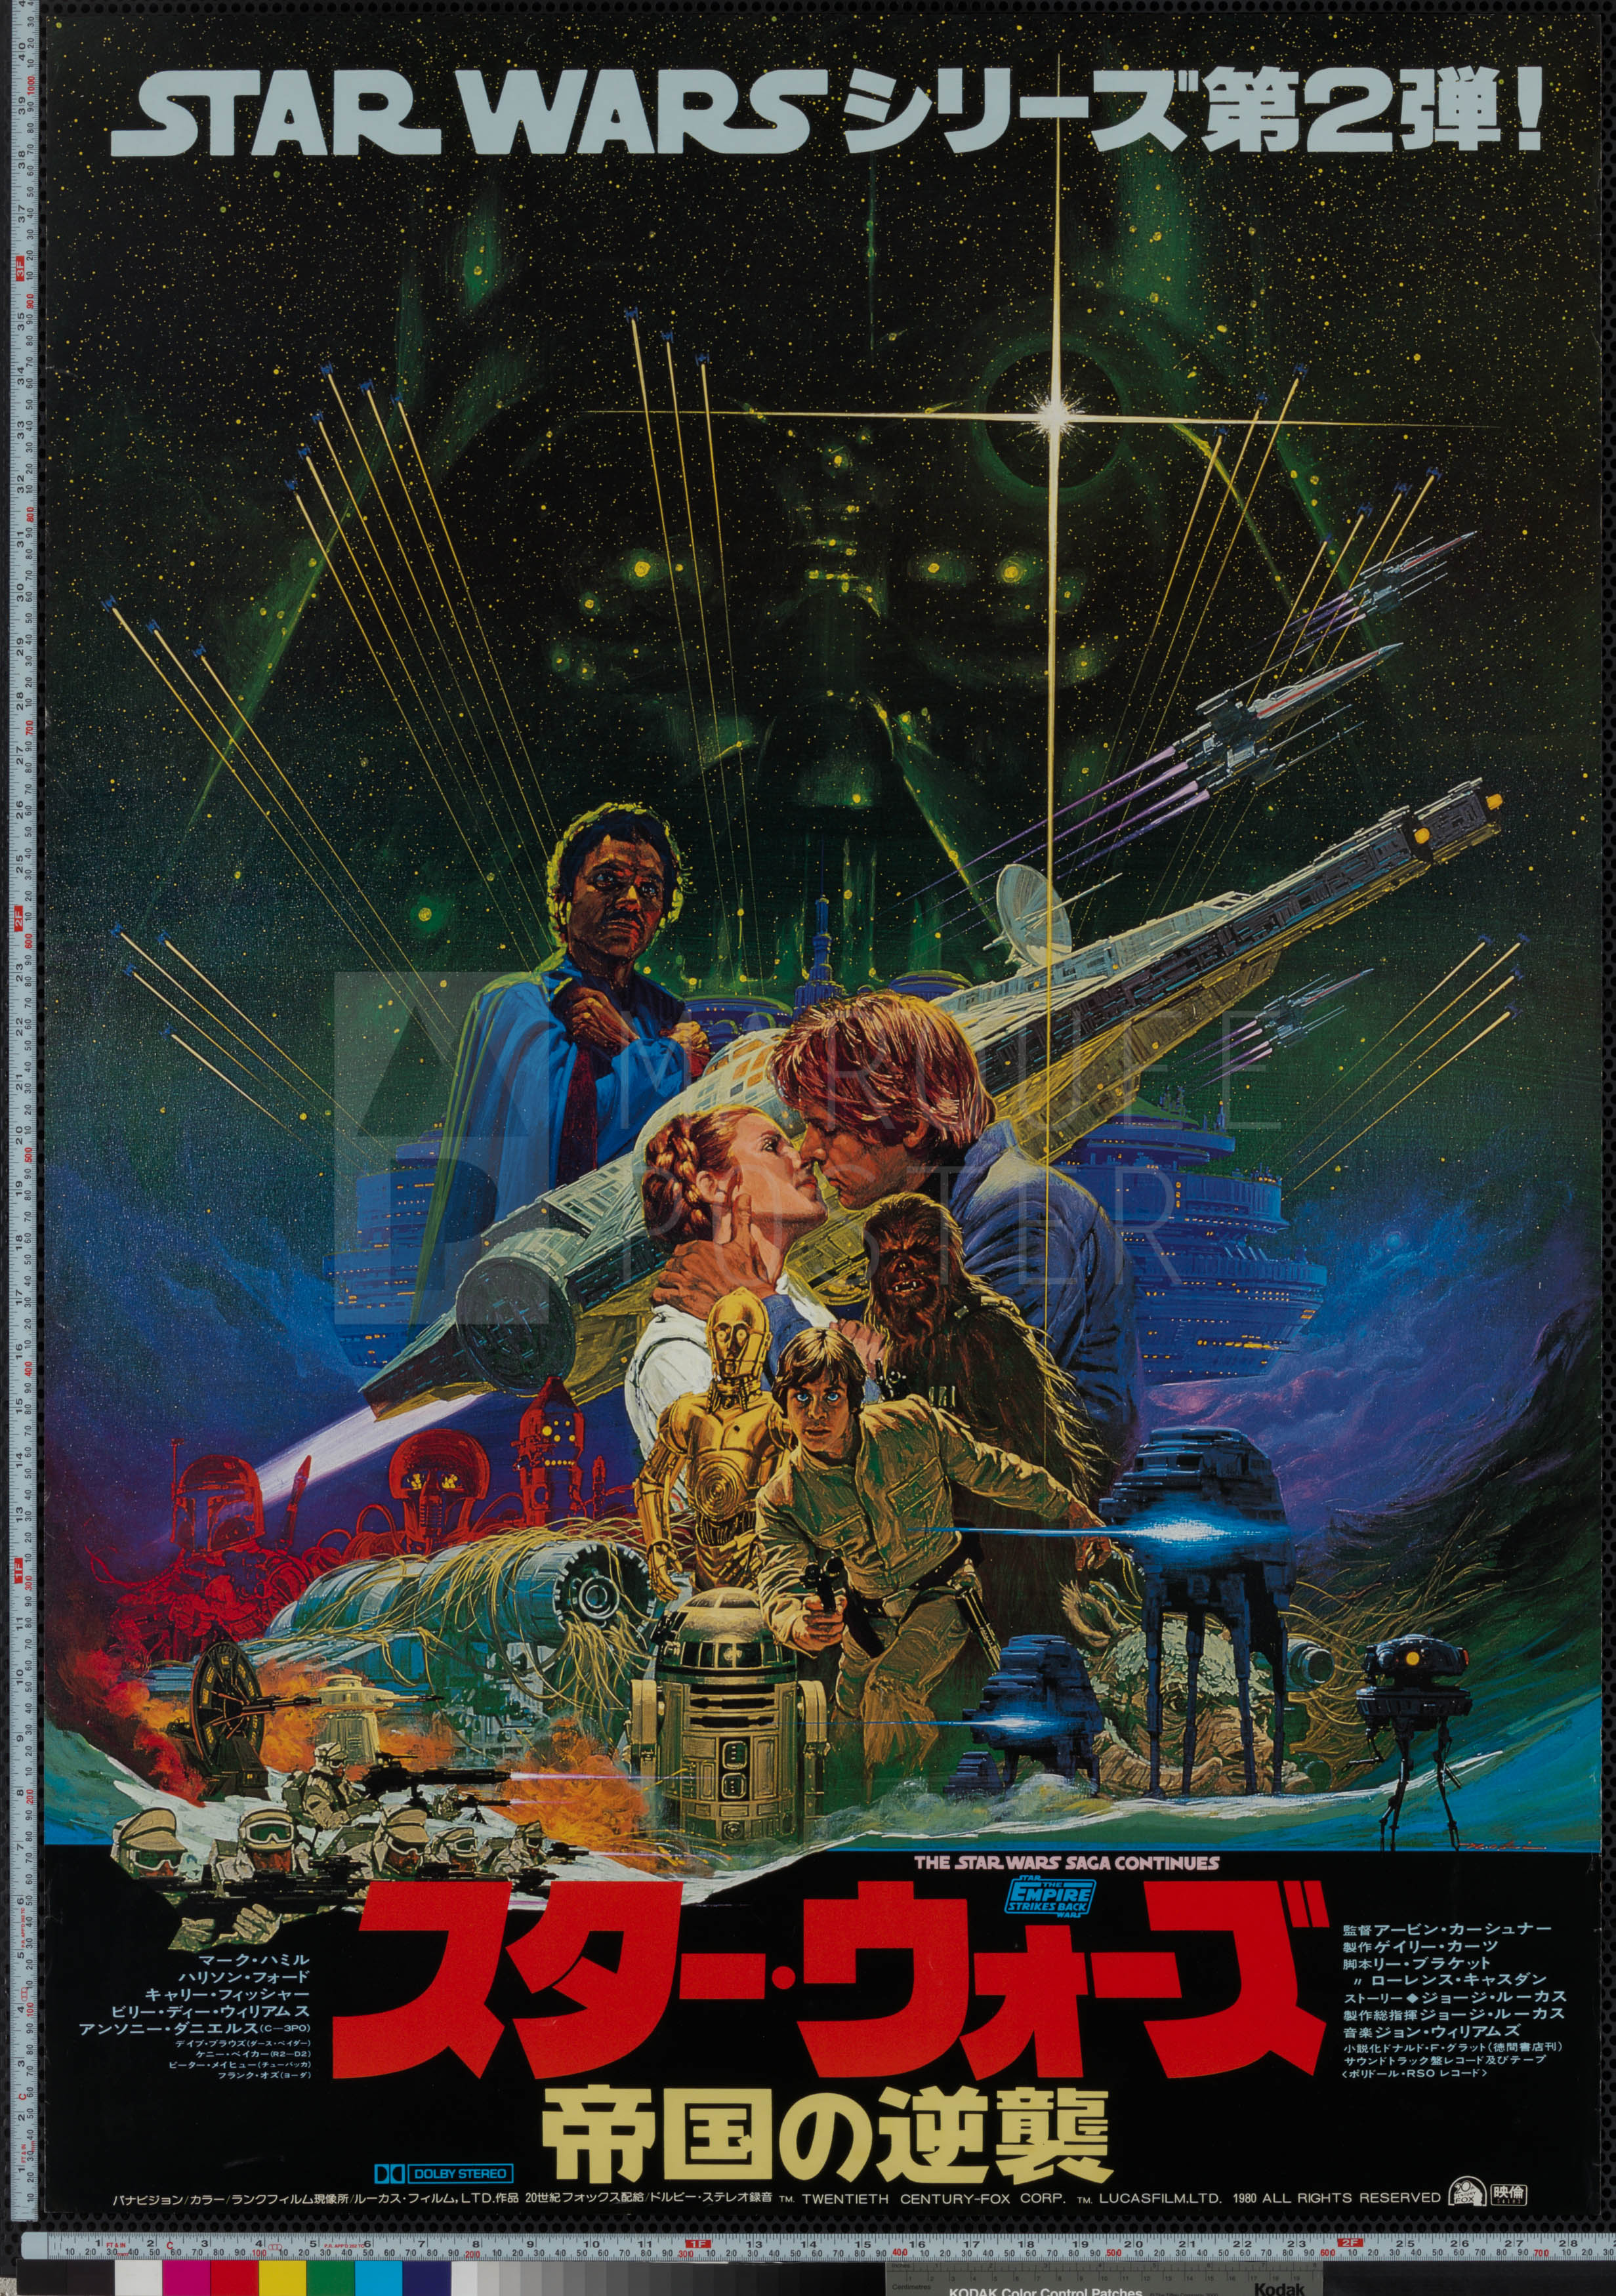 Star Wars Episode V The Empire Strikes Back 1980 Japanese B1 Marquee Poster